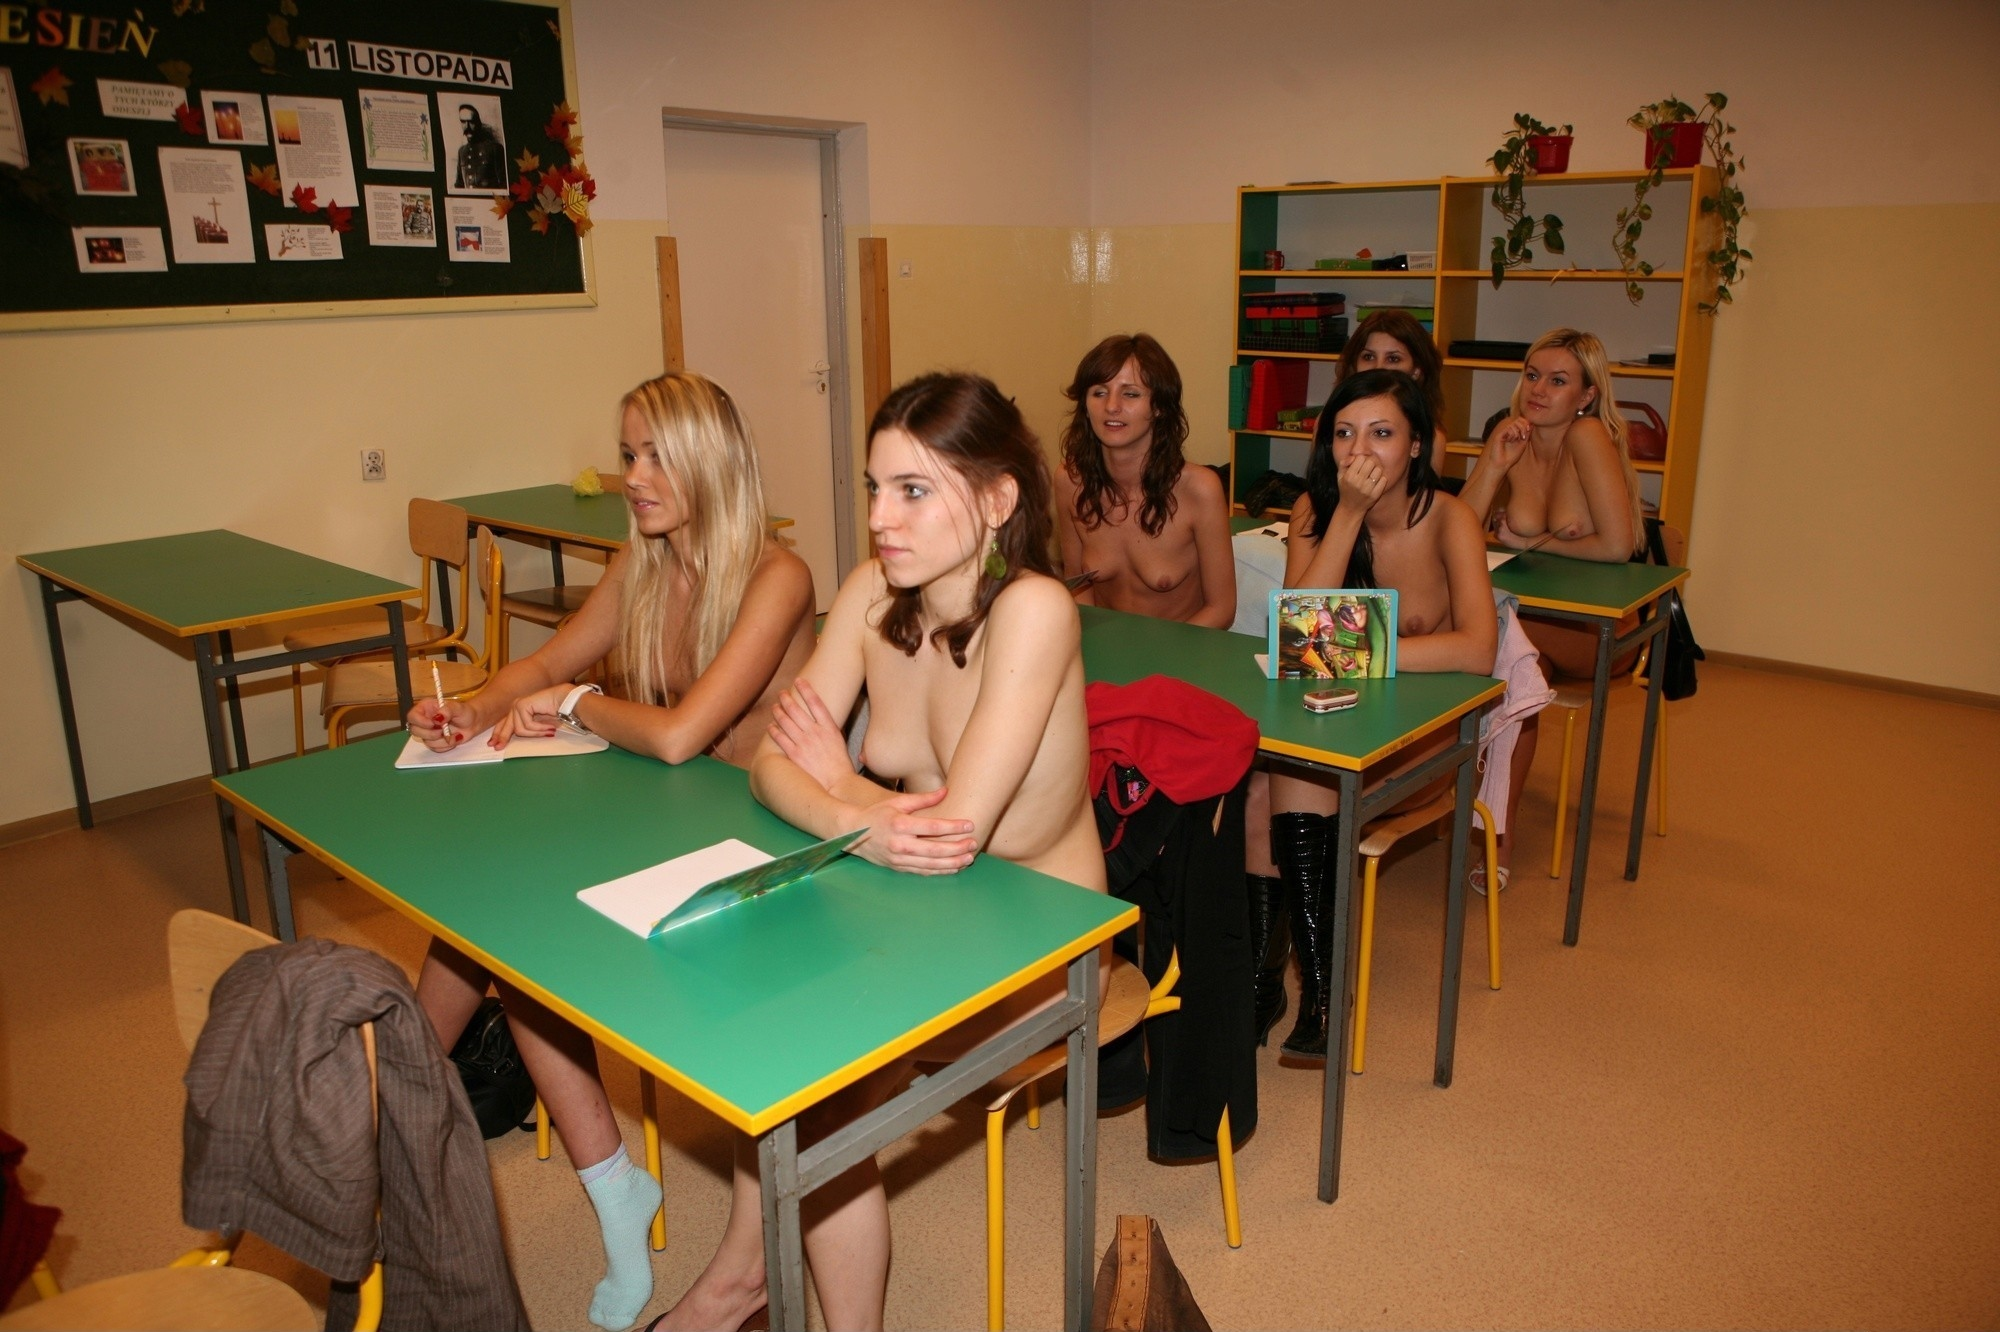 Teen girls naked in class — 1